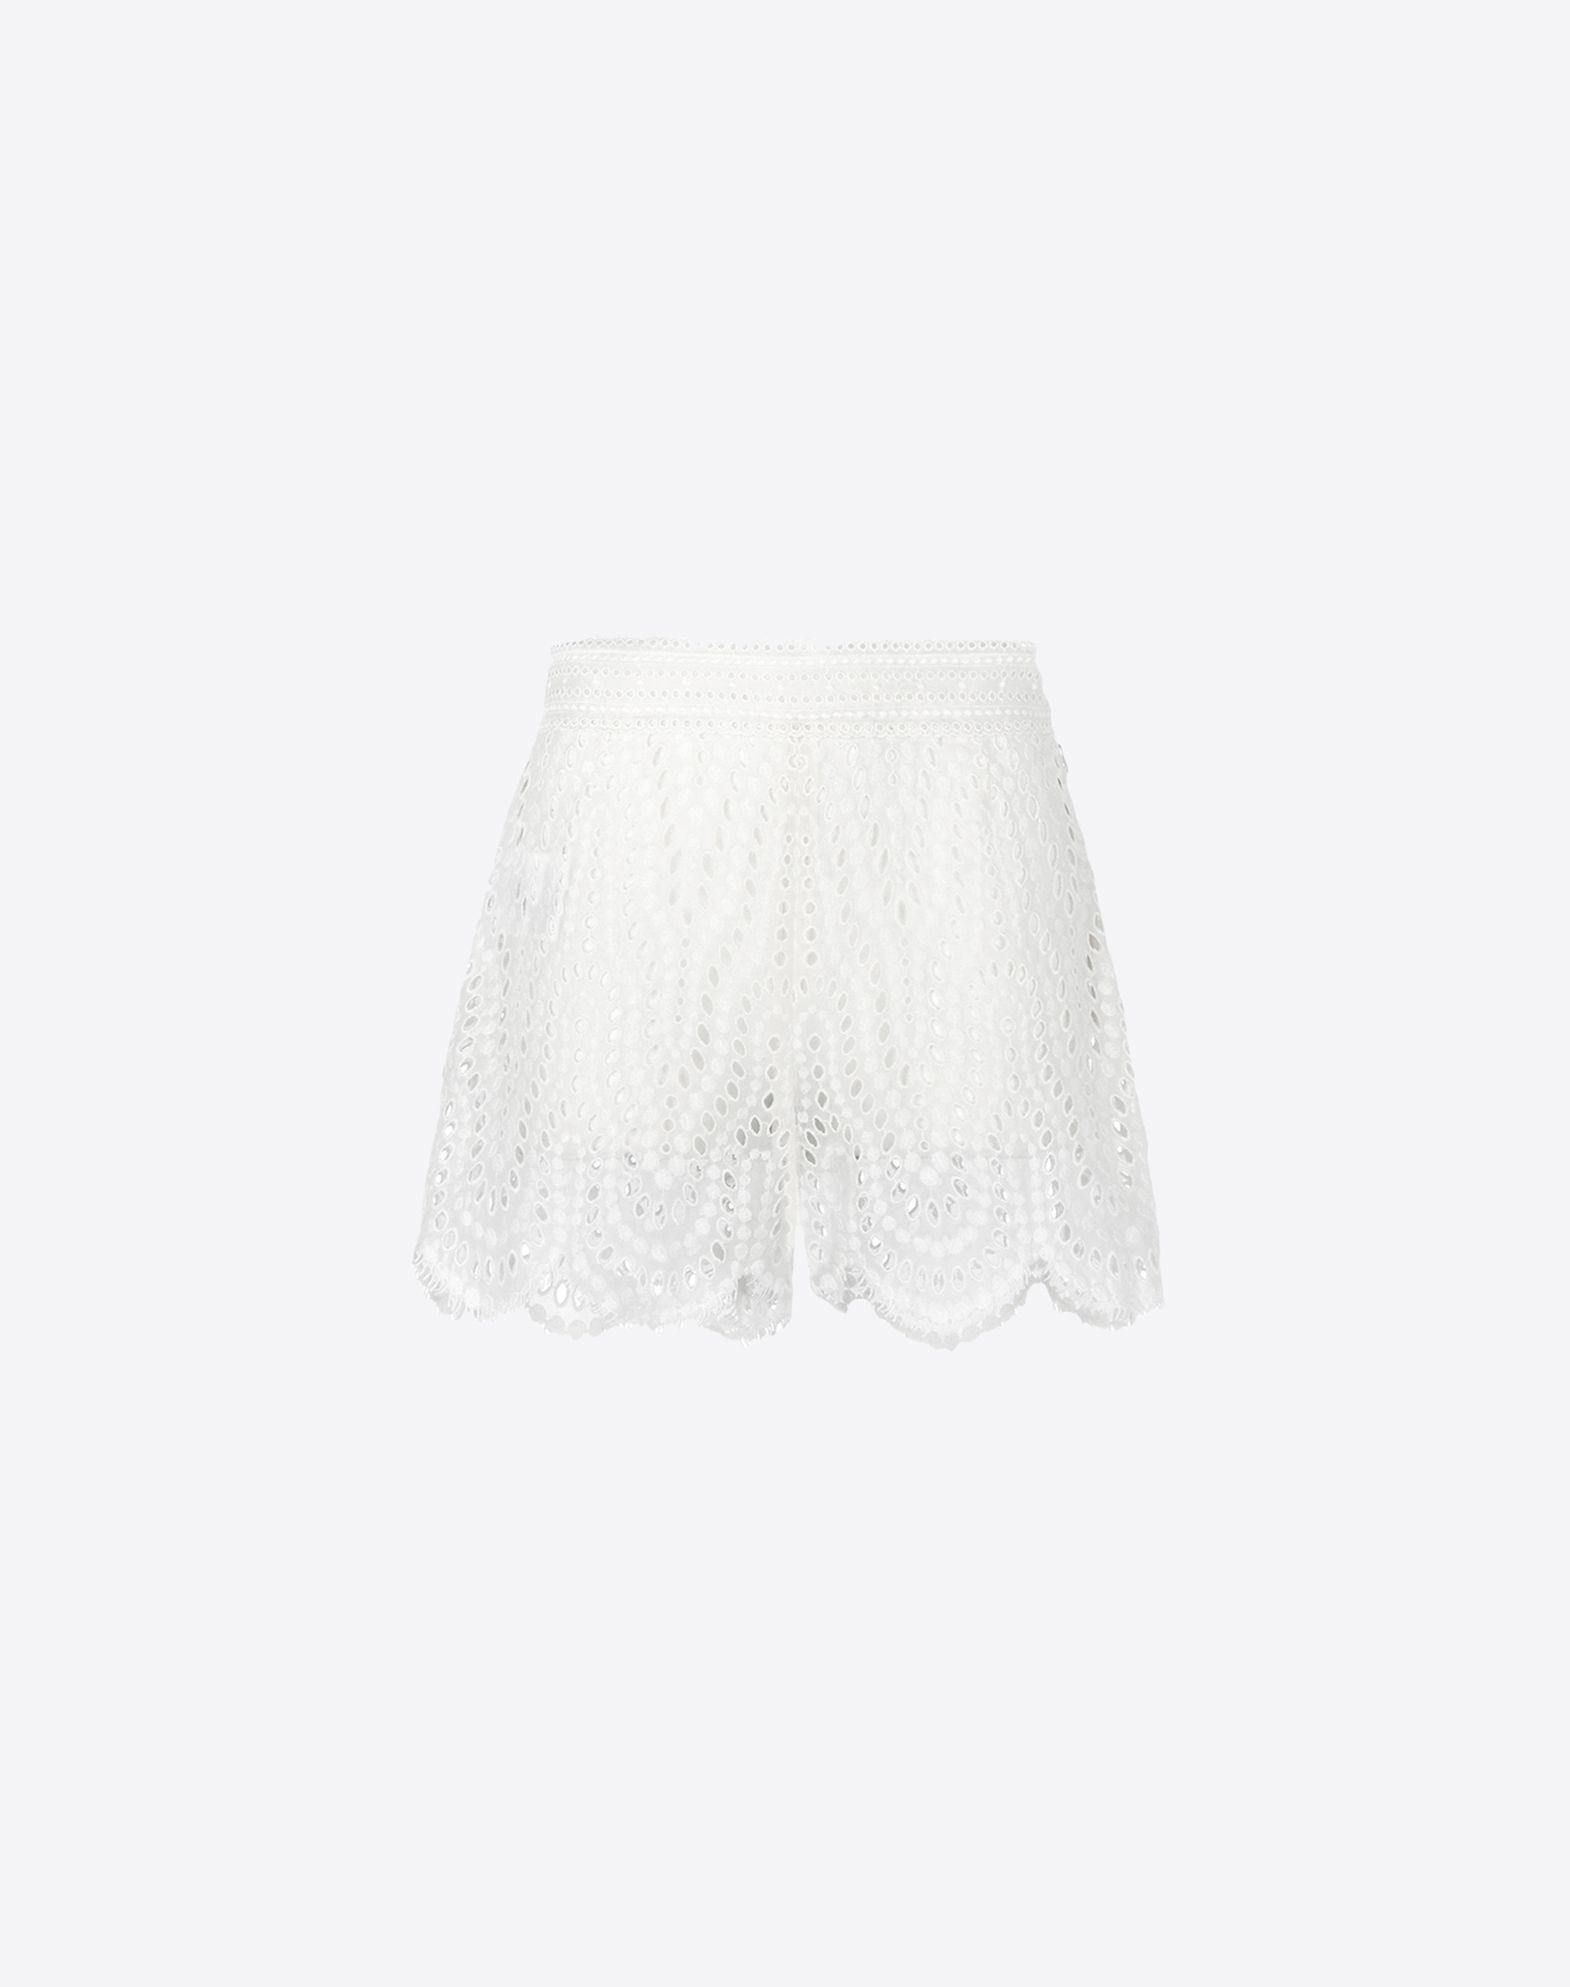 VALENTINO Shorts in broderie anglaise lace.  - Side fastening with concealed zip.  - Scalloped hem.  - Length 33 cm.  - Cotton voile lining.  - Broderie Anglaise Lace (85% Cotton, 15% Polyester).  - Regular fit.  The model is 176 cm tall and wears an Italian size 40.  - Made in Italy.   36767913ei